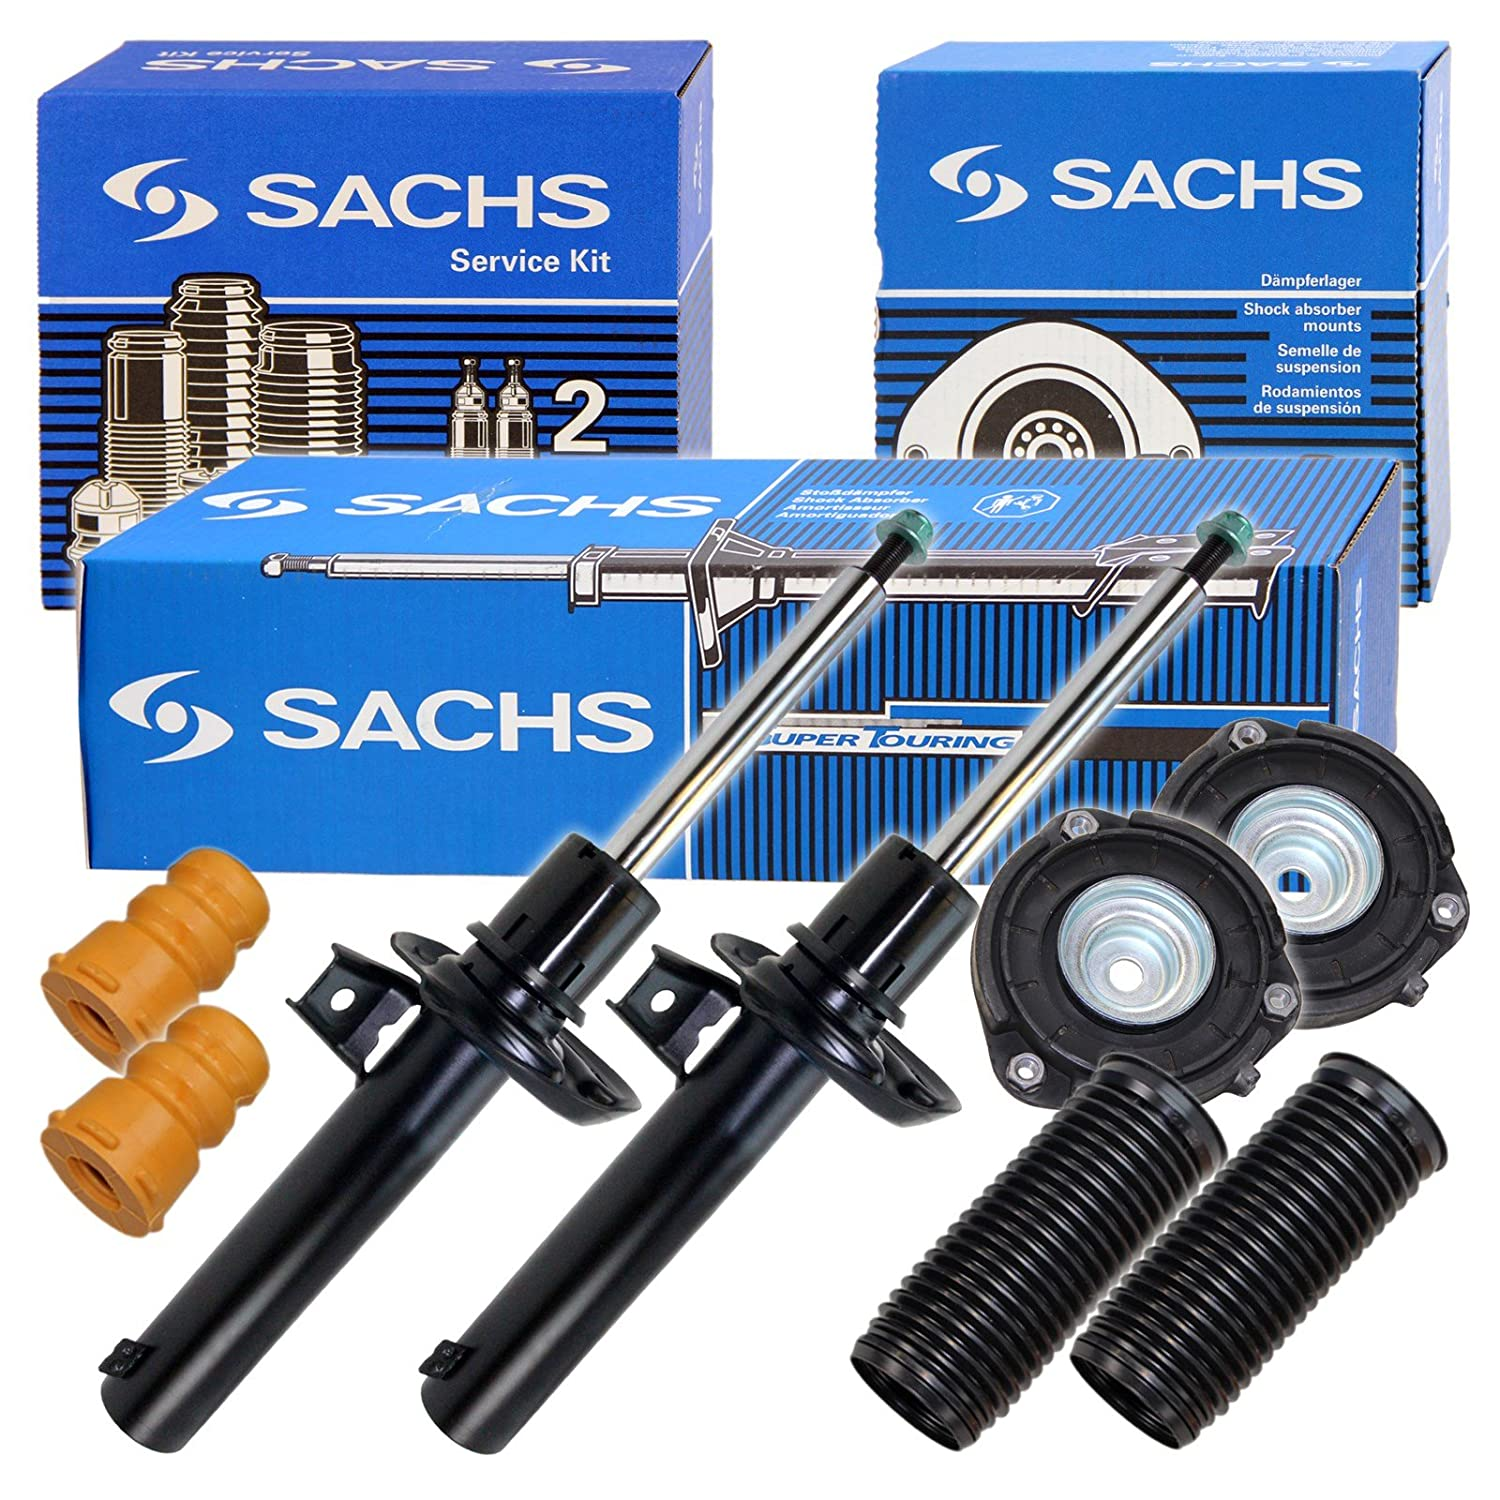 # Genuine Sachs Heavy Duty front shock absorber Dust Cover Kit